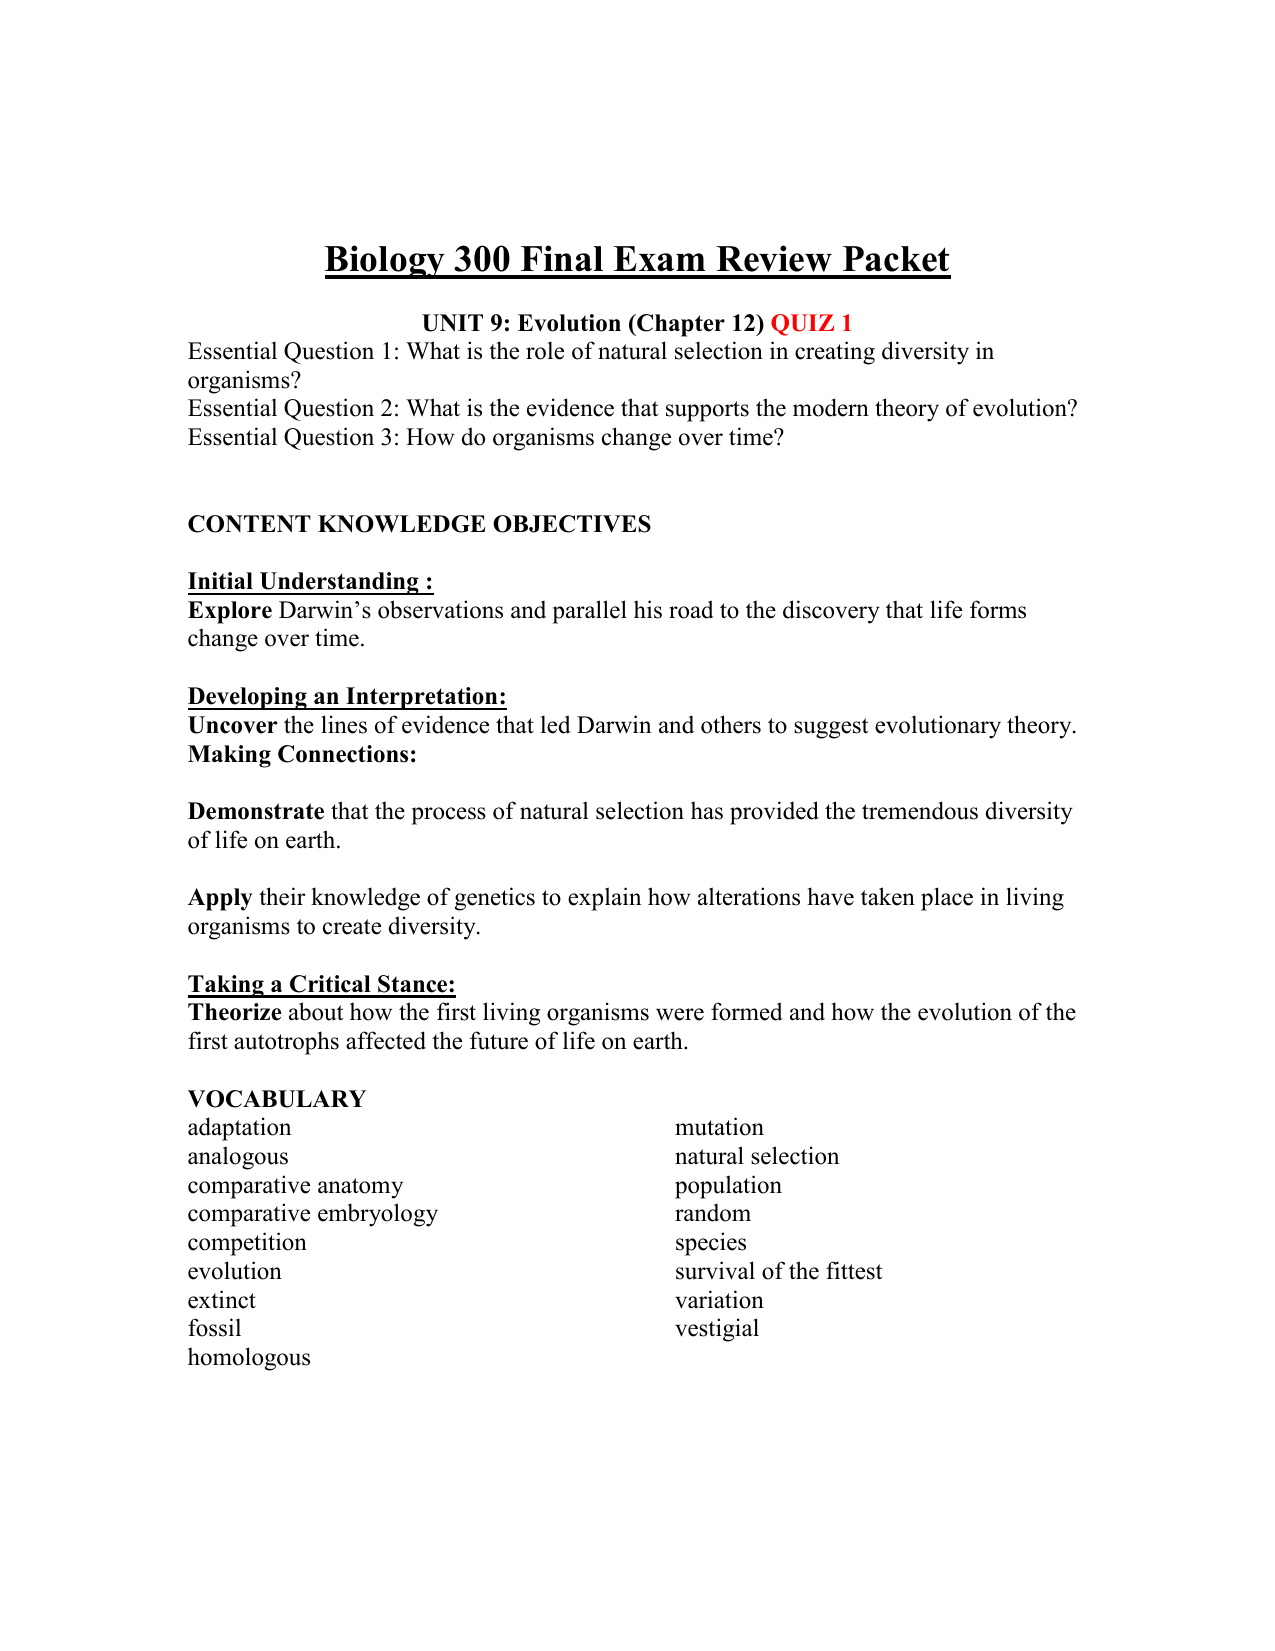 Worksheet Evolution Vocabulary Worksheet Grass Fedjp